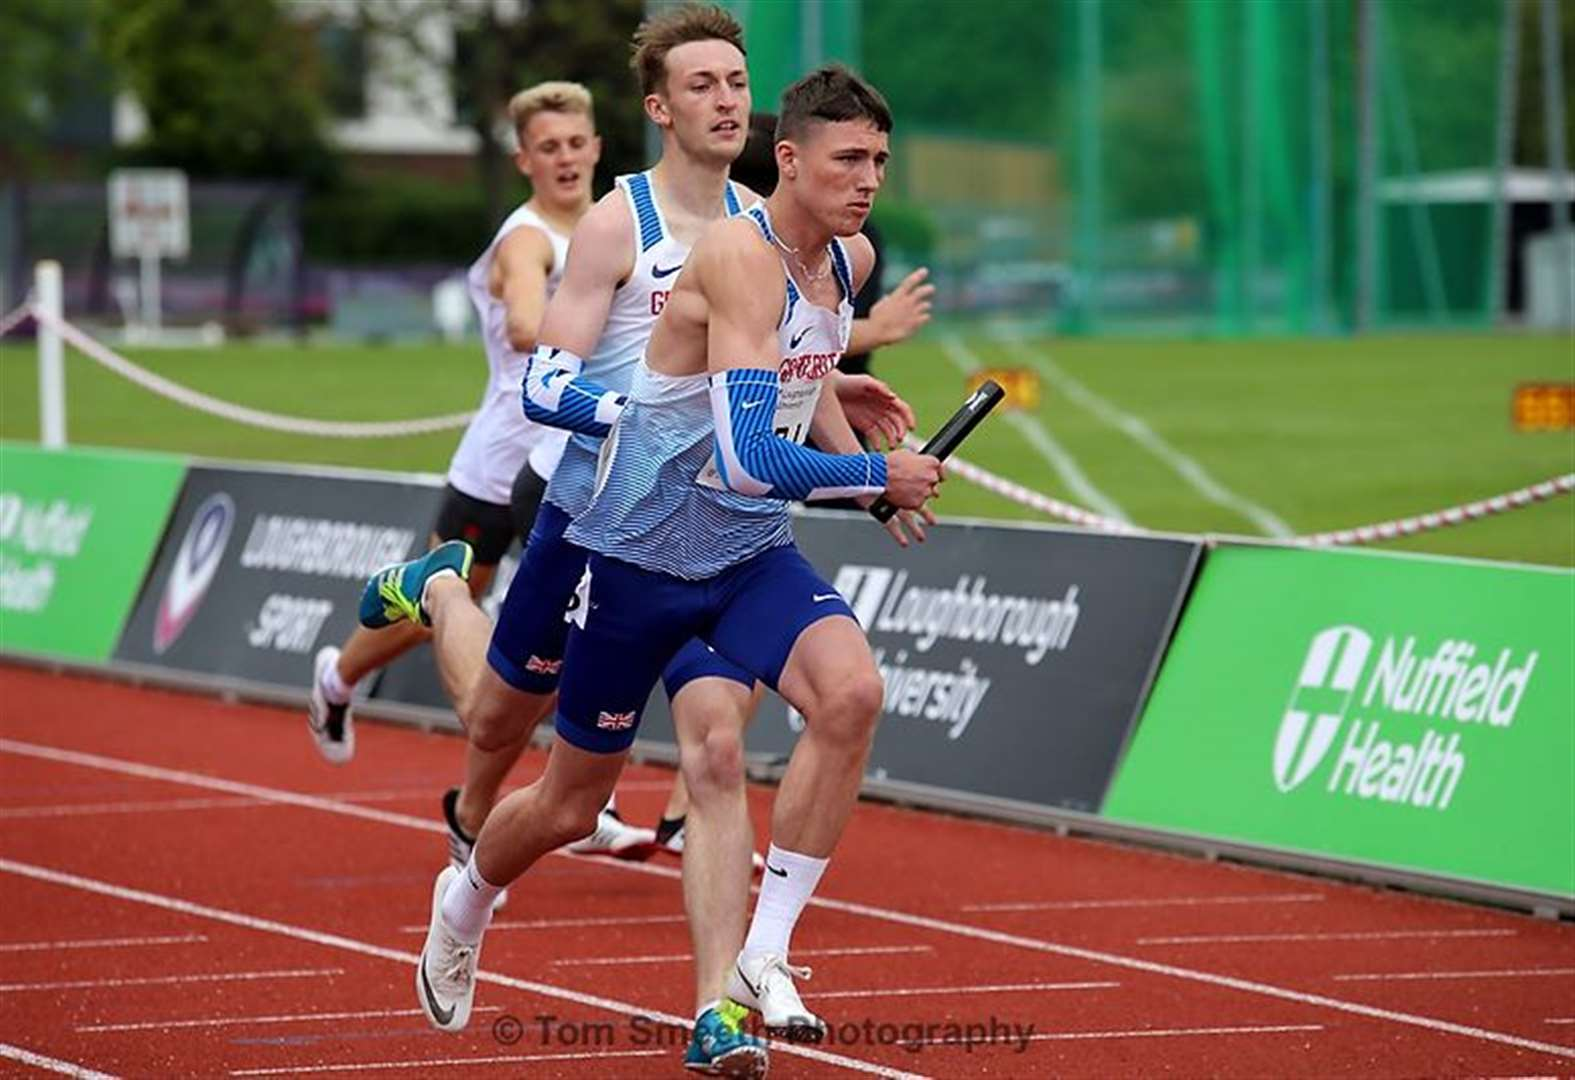 Davey impressed at Loughborough International with Euro qualifying result